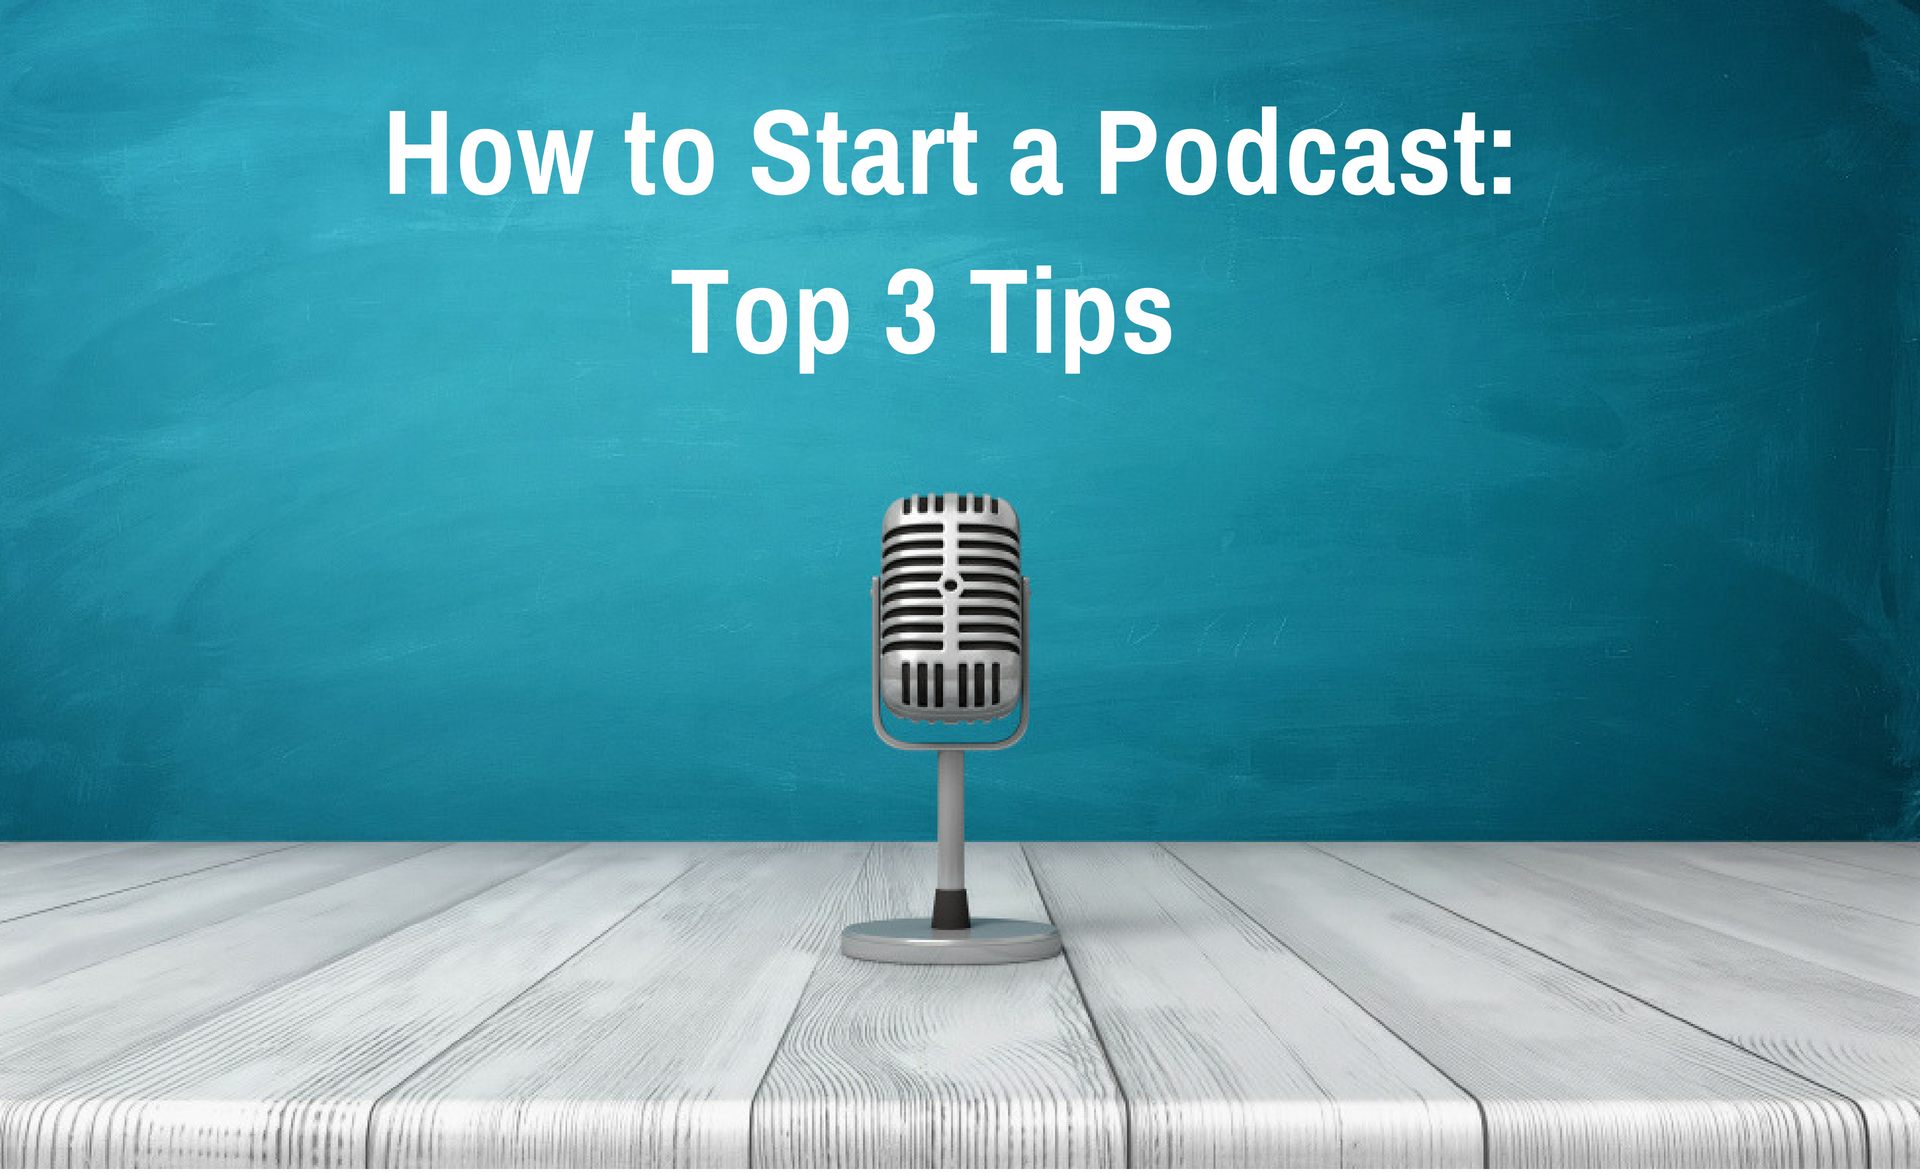 How to Start a Podcast: 3 Top Tips